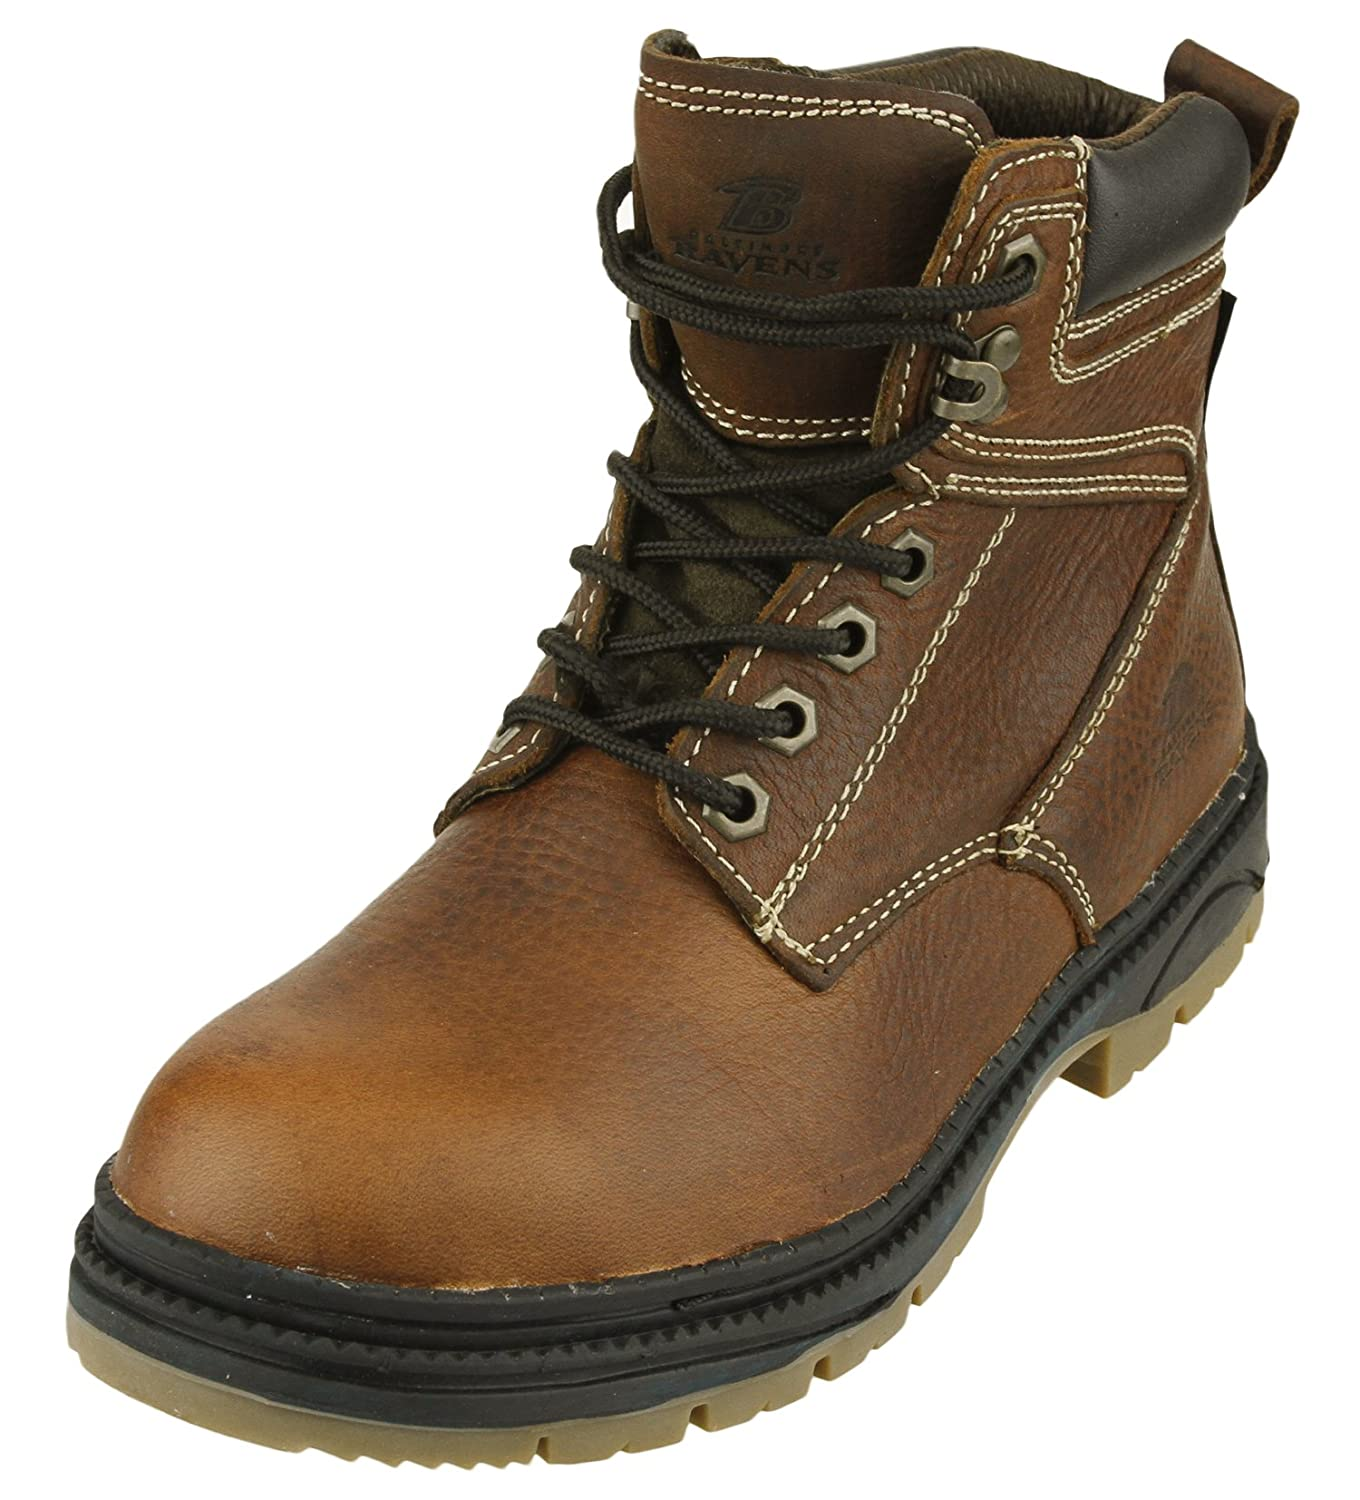 453ac622ba0 NFL Mens Rounded Steel Toe Lace up Brown Leather Work Boots, Team Options